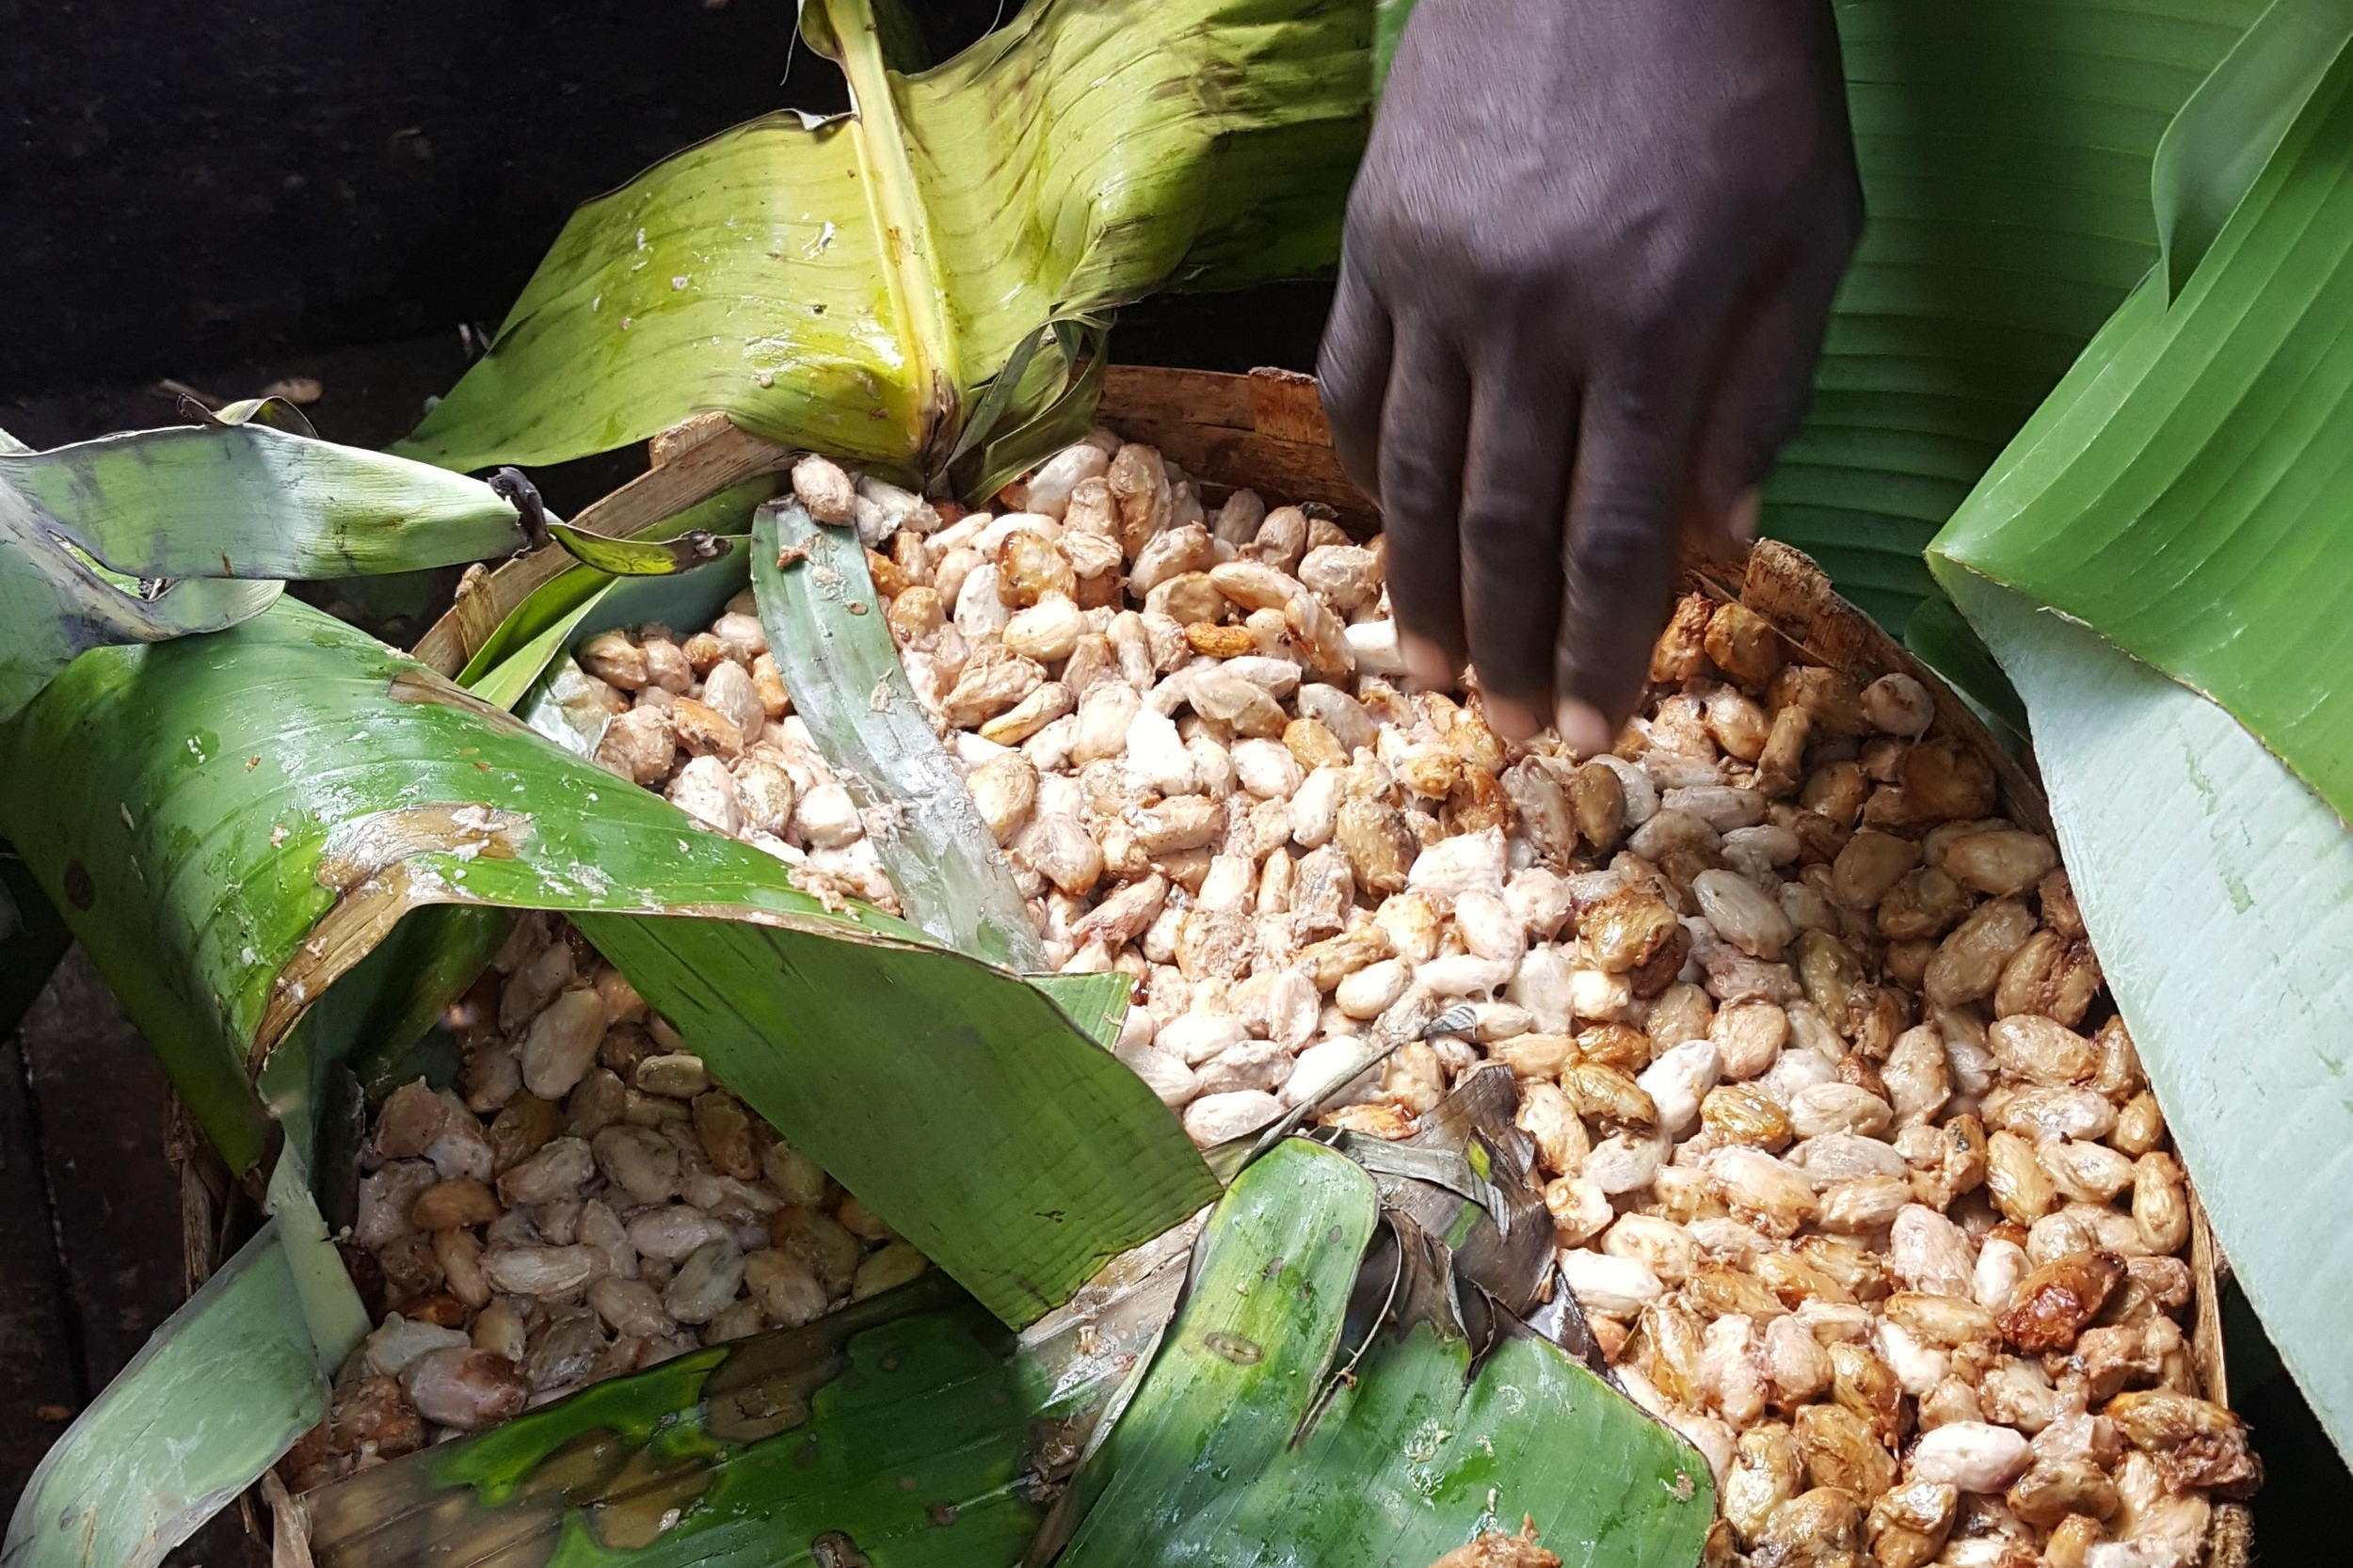 - Fermenting cocoa beans in banana leaves. Credit: Traidcraft Exchange/Catherine Gunby